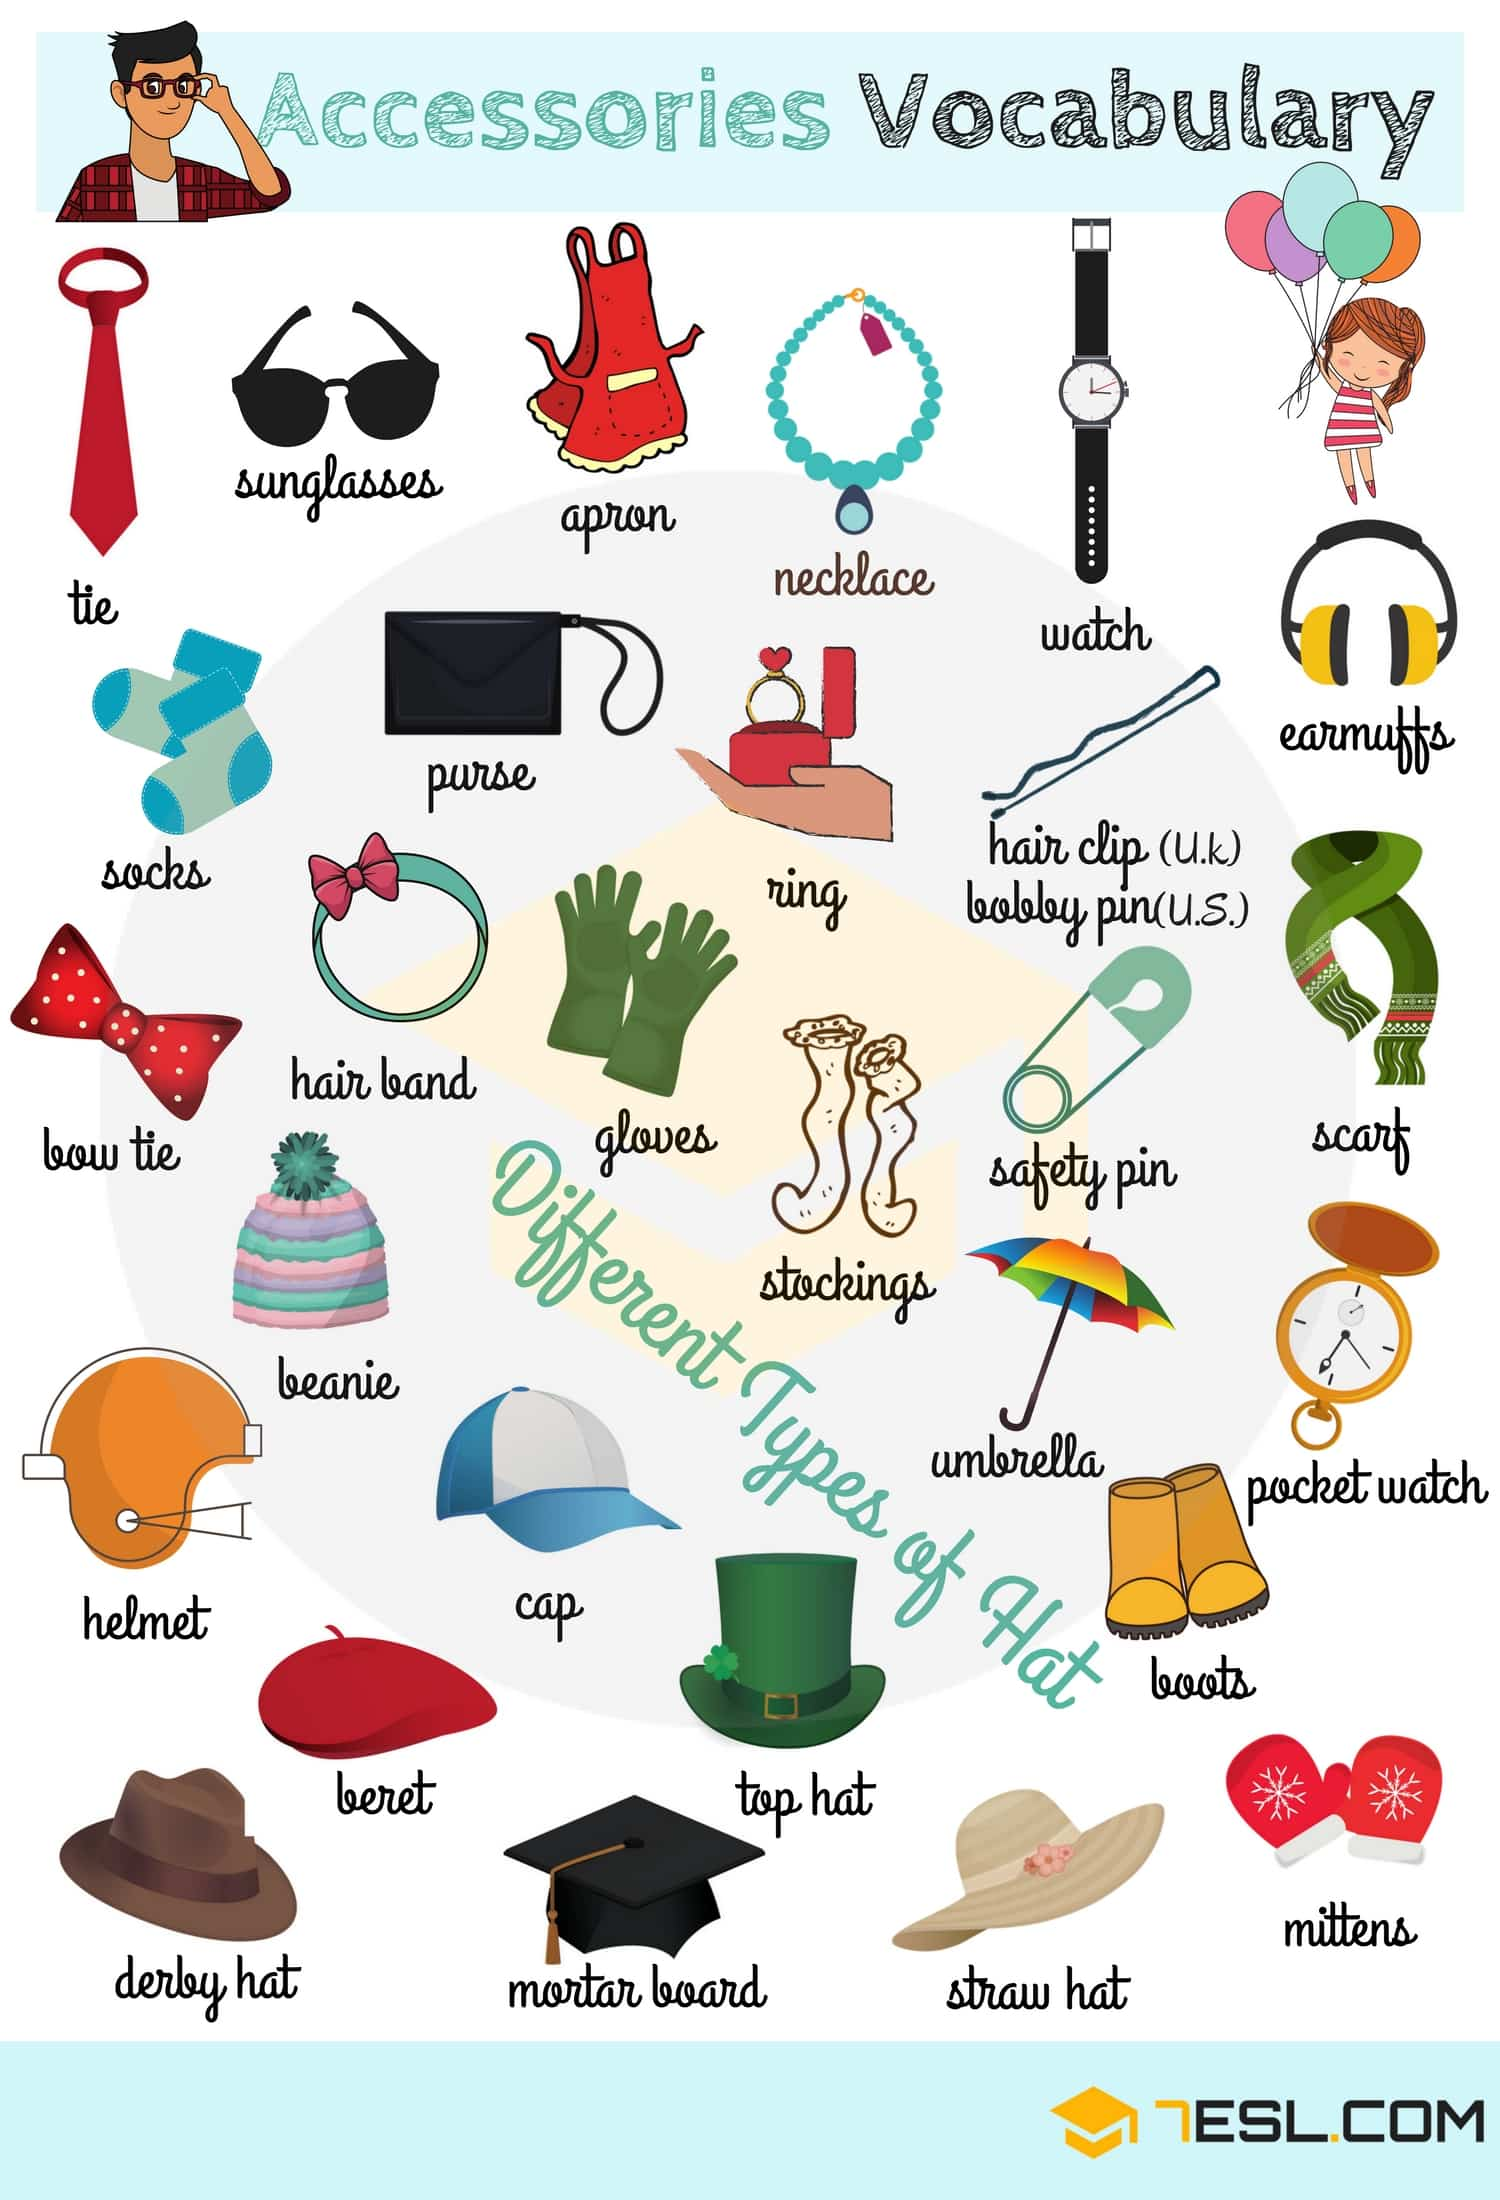 Accessories Vocabulary | Image